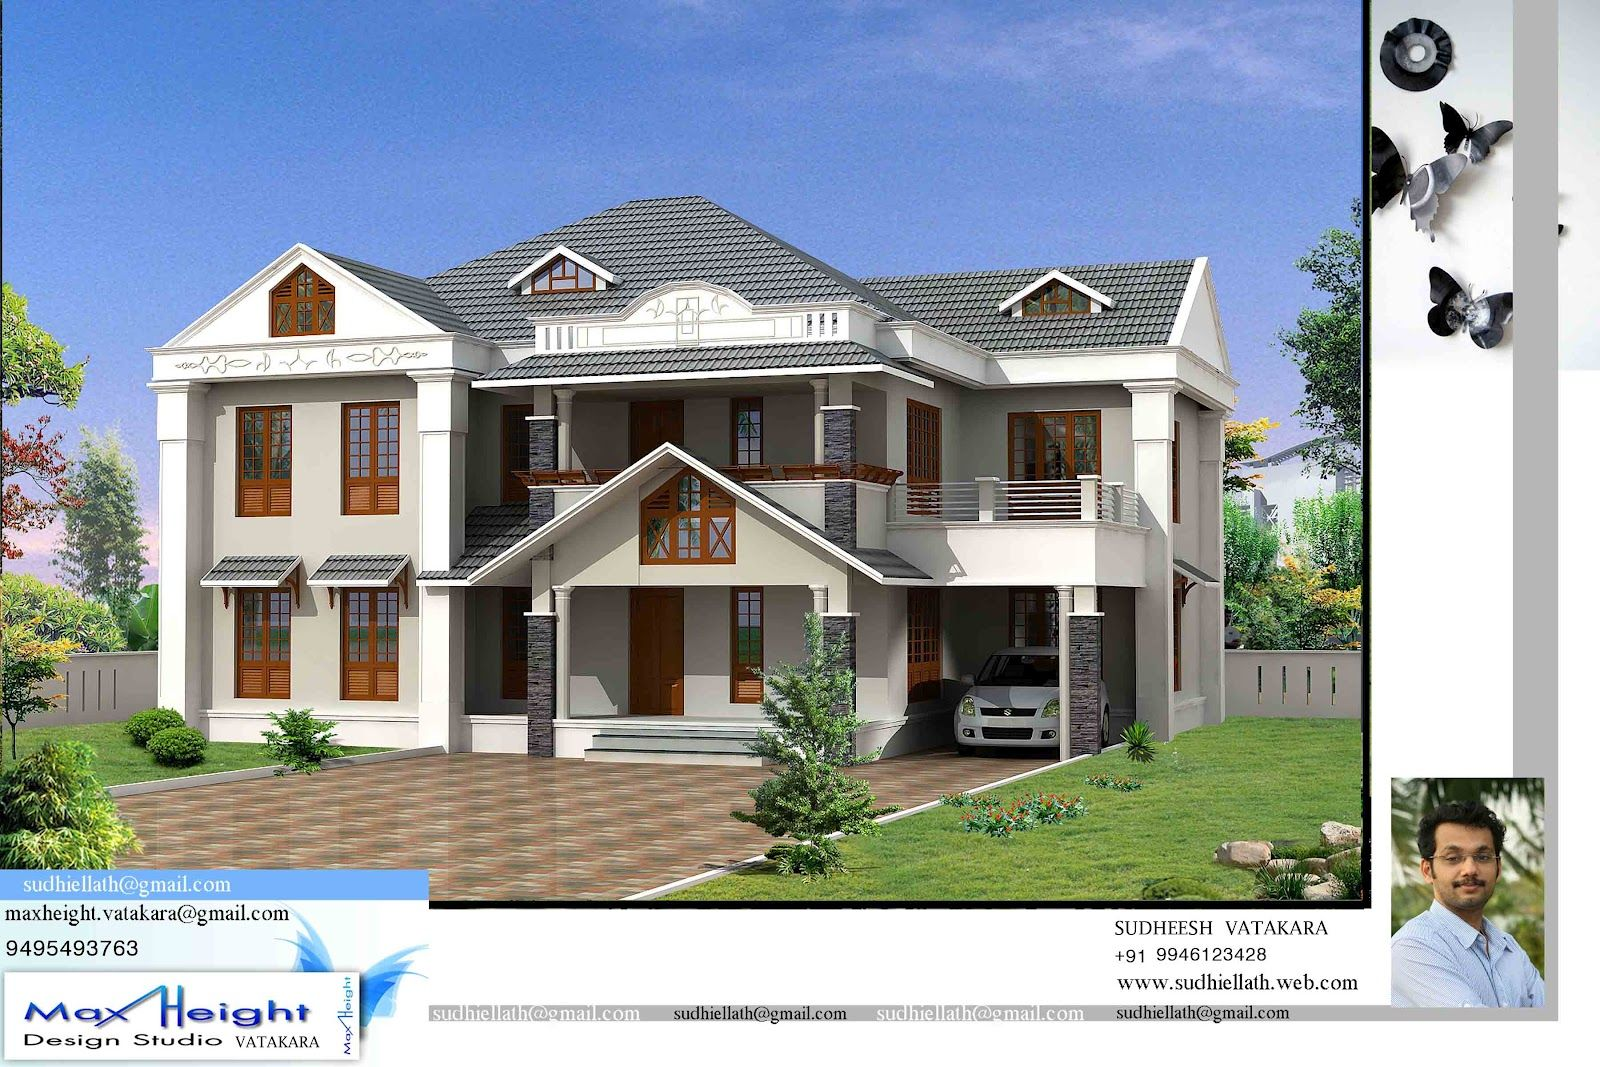 Charmant Model Home Designer Wallpapers Background Hdesktops Design Ideas Budget